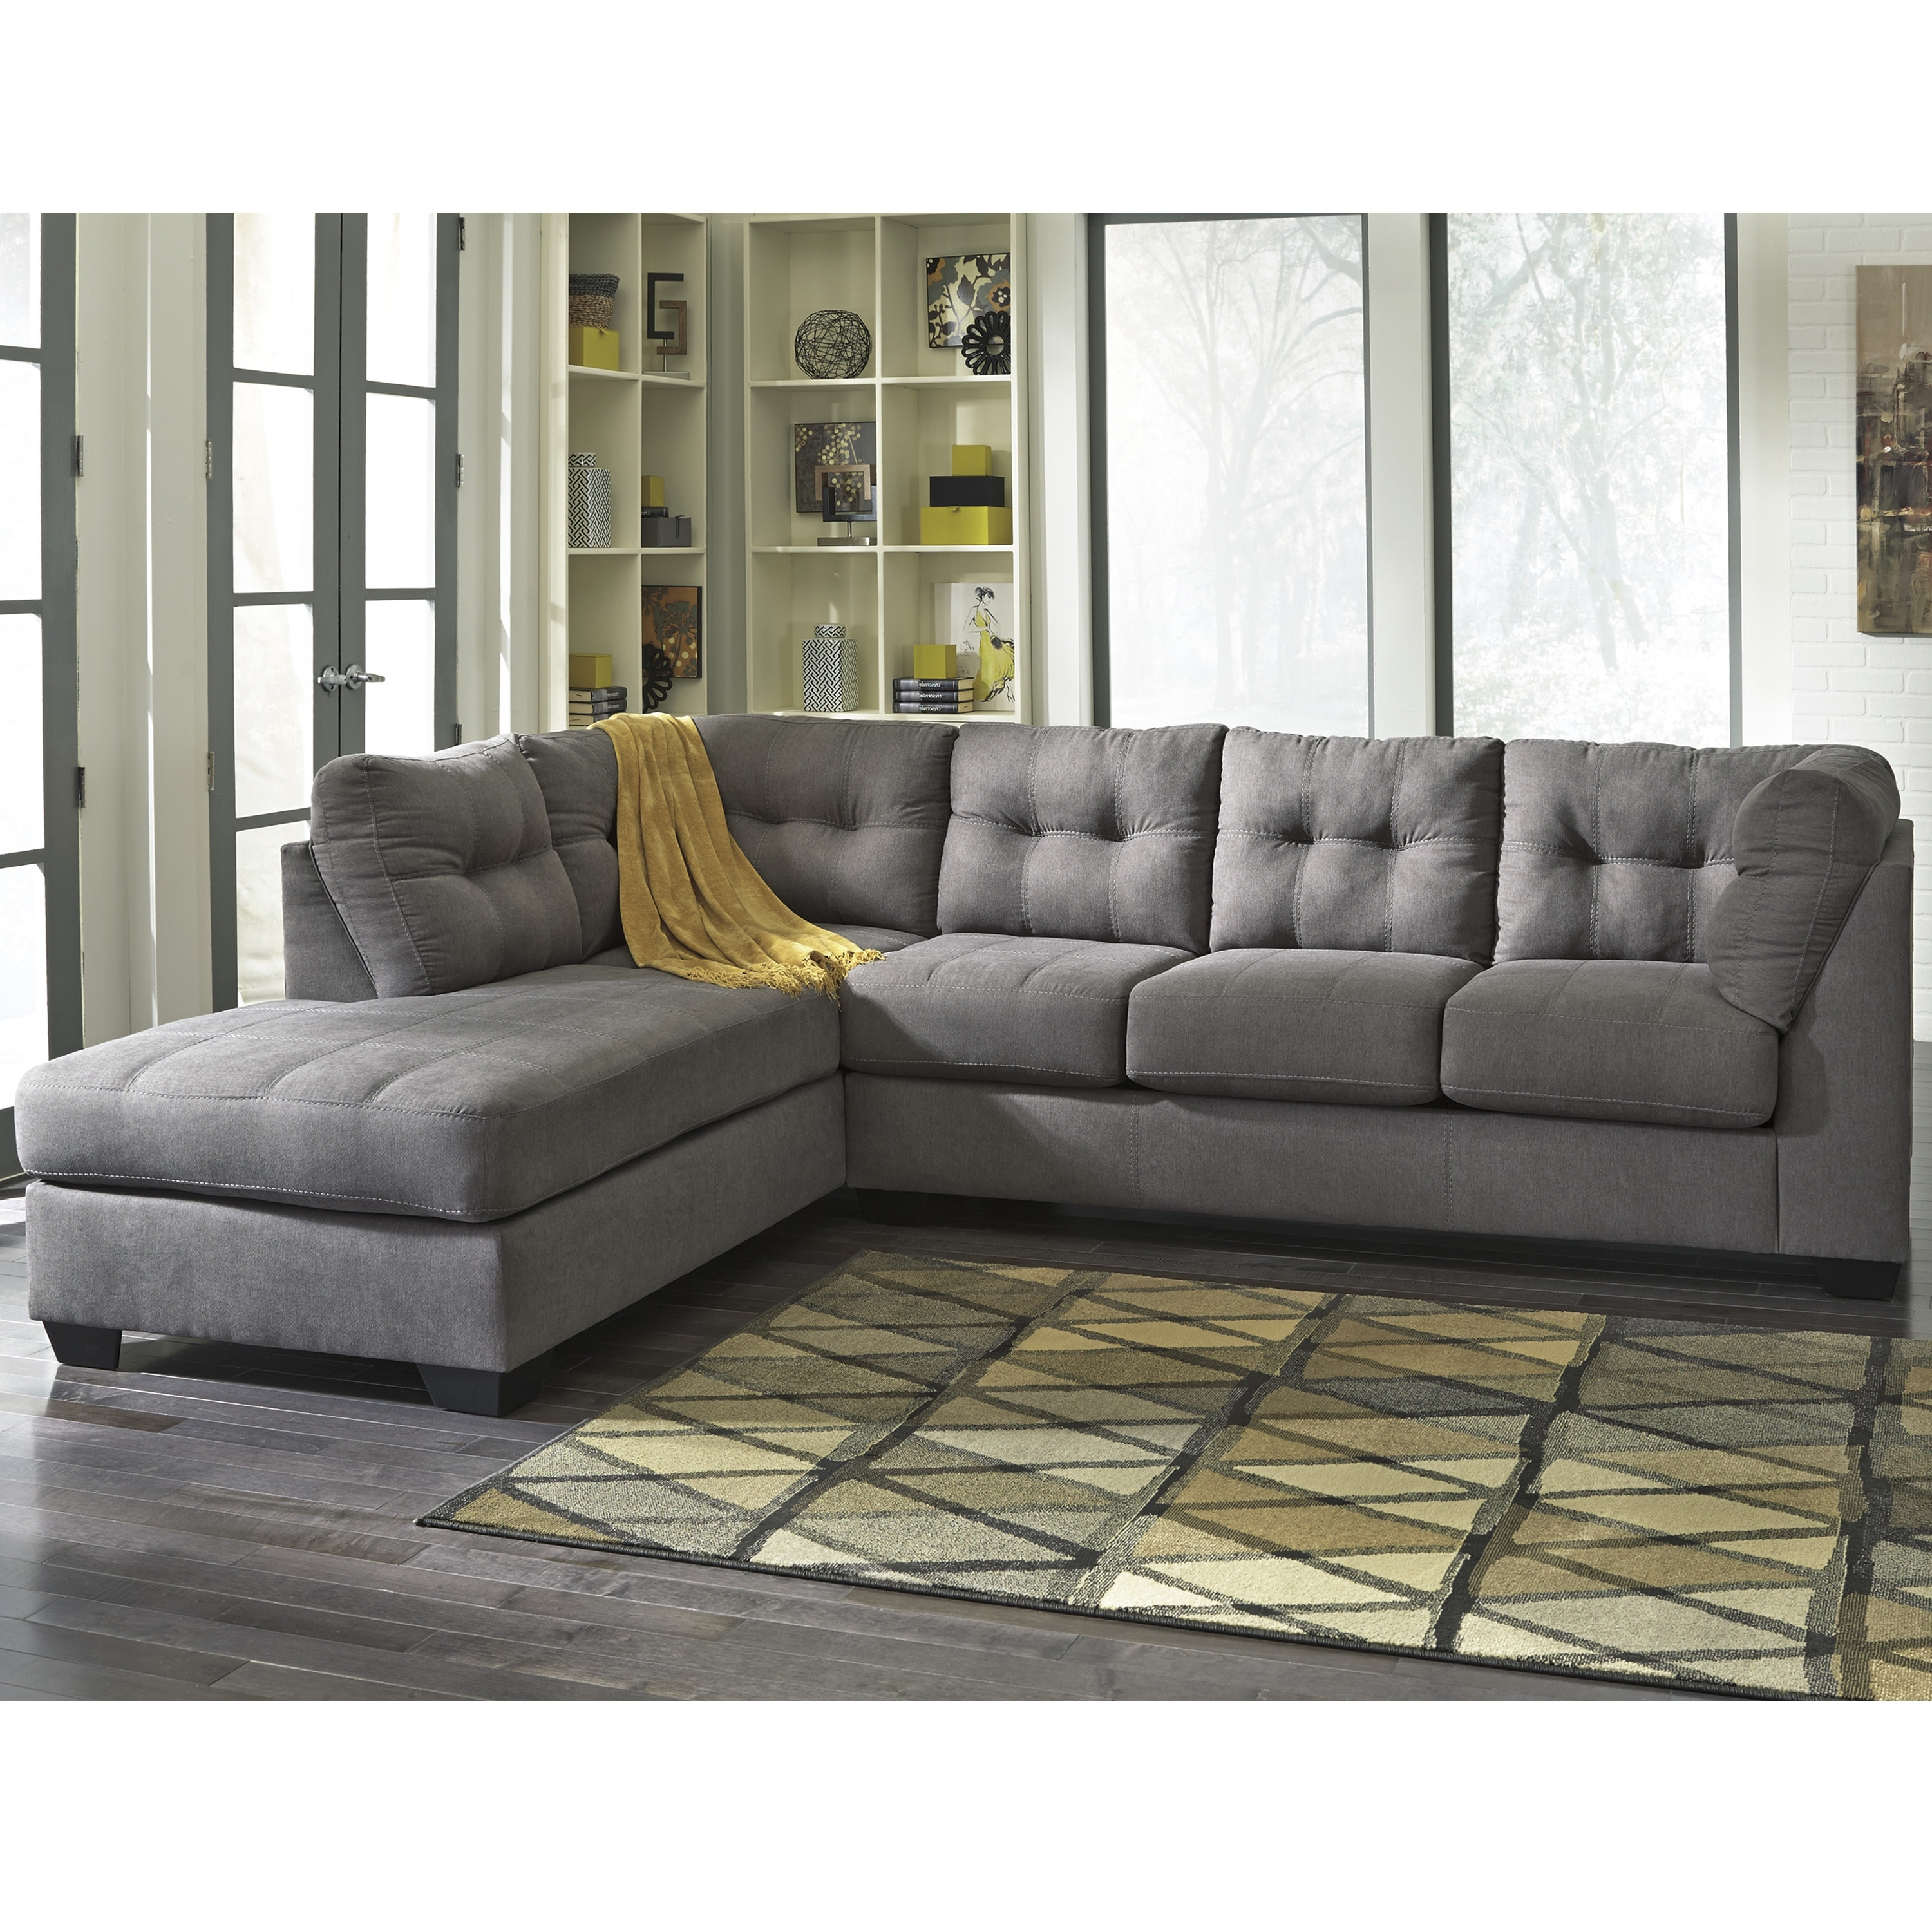 Sectional Sofa Portland Or   Functionalities In Portland Or Sectional Sofas (Image 5 of 10)